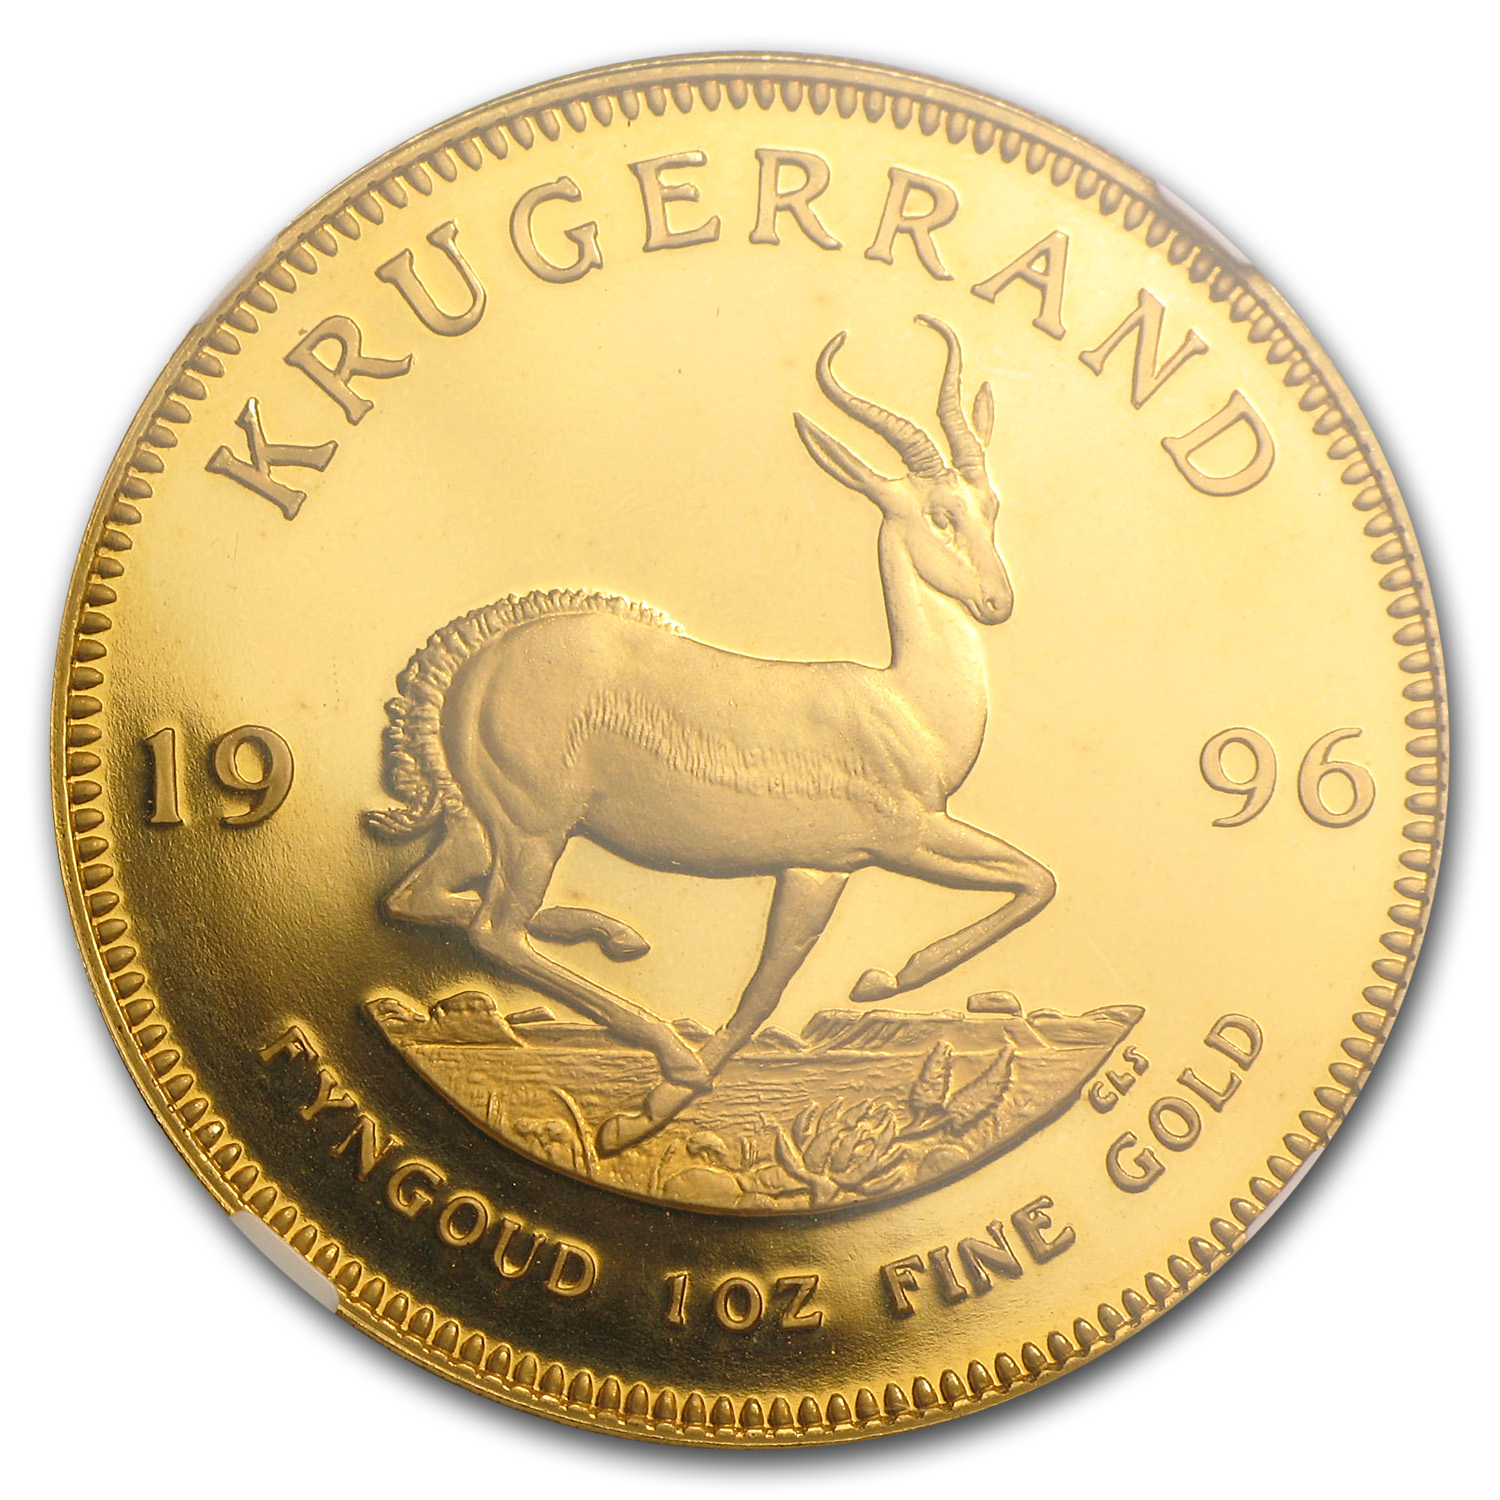 1996 South Africa 1 oz Gold Krugerrand PF-67 NGC